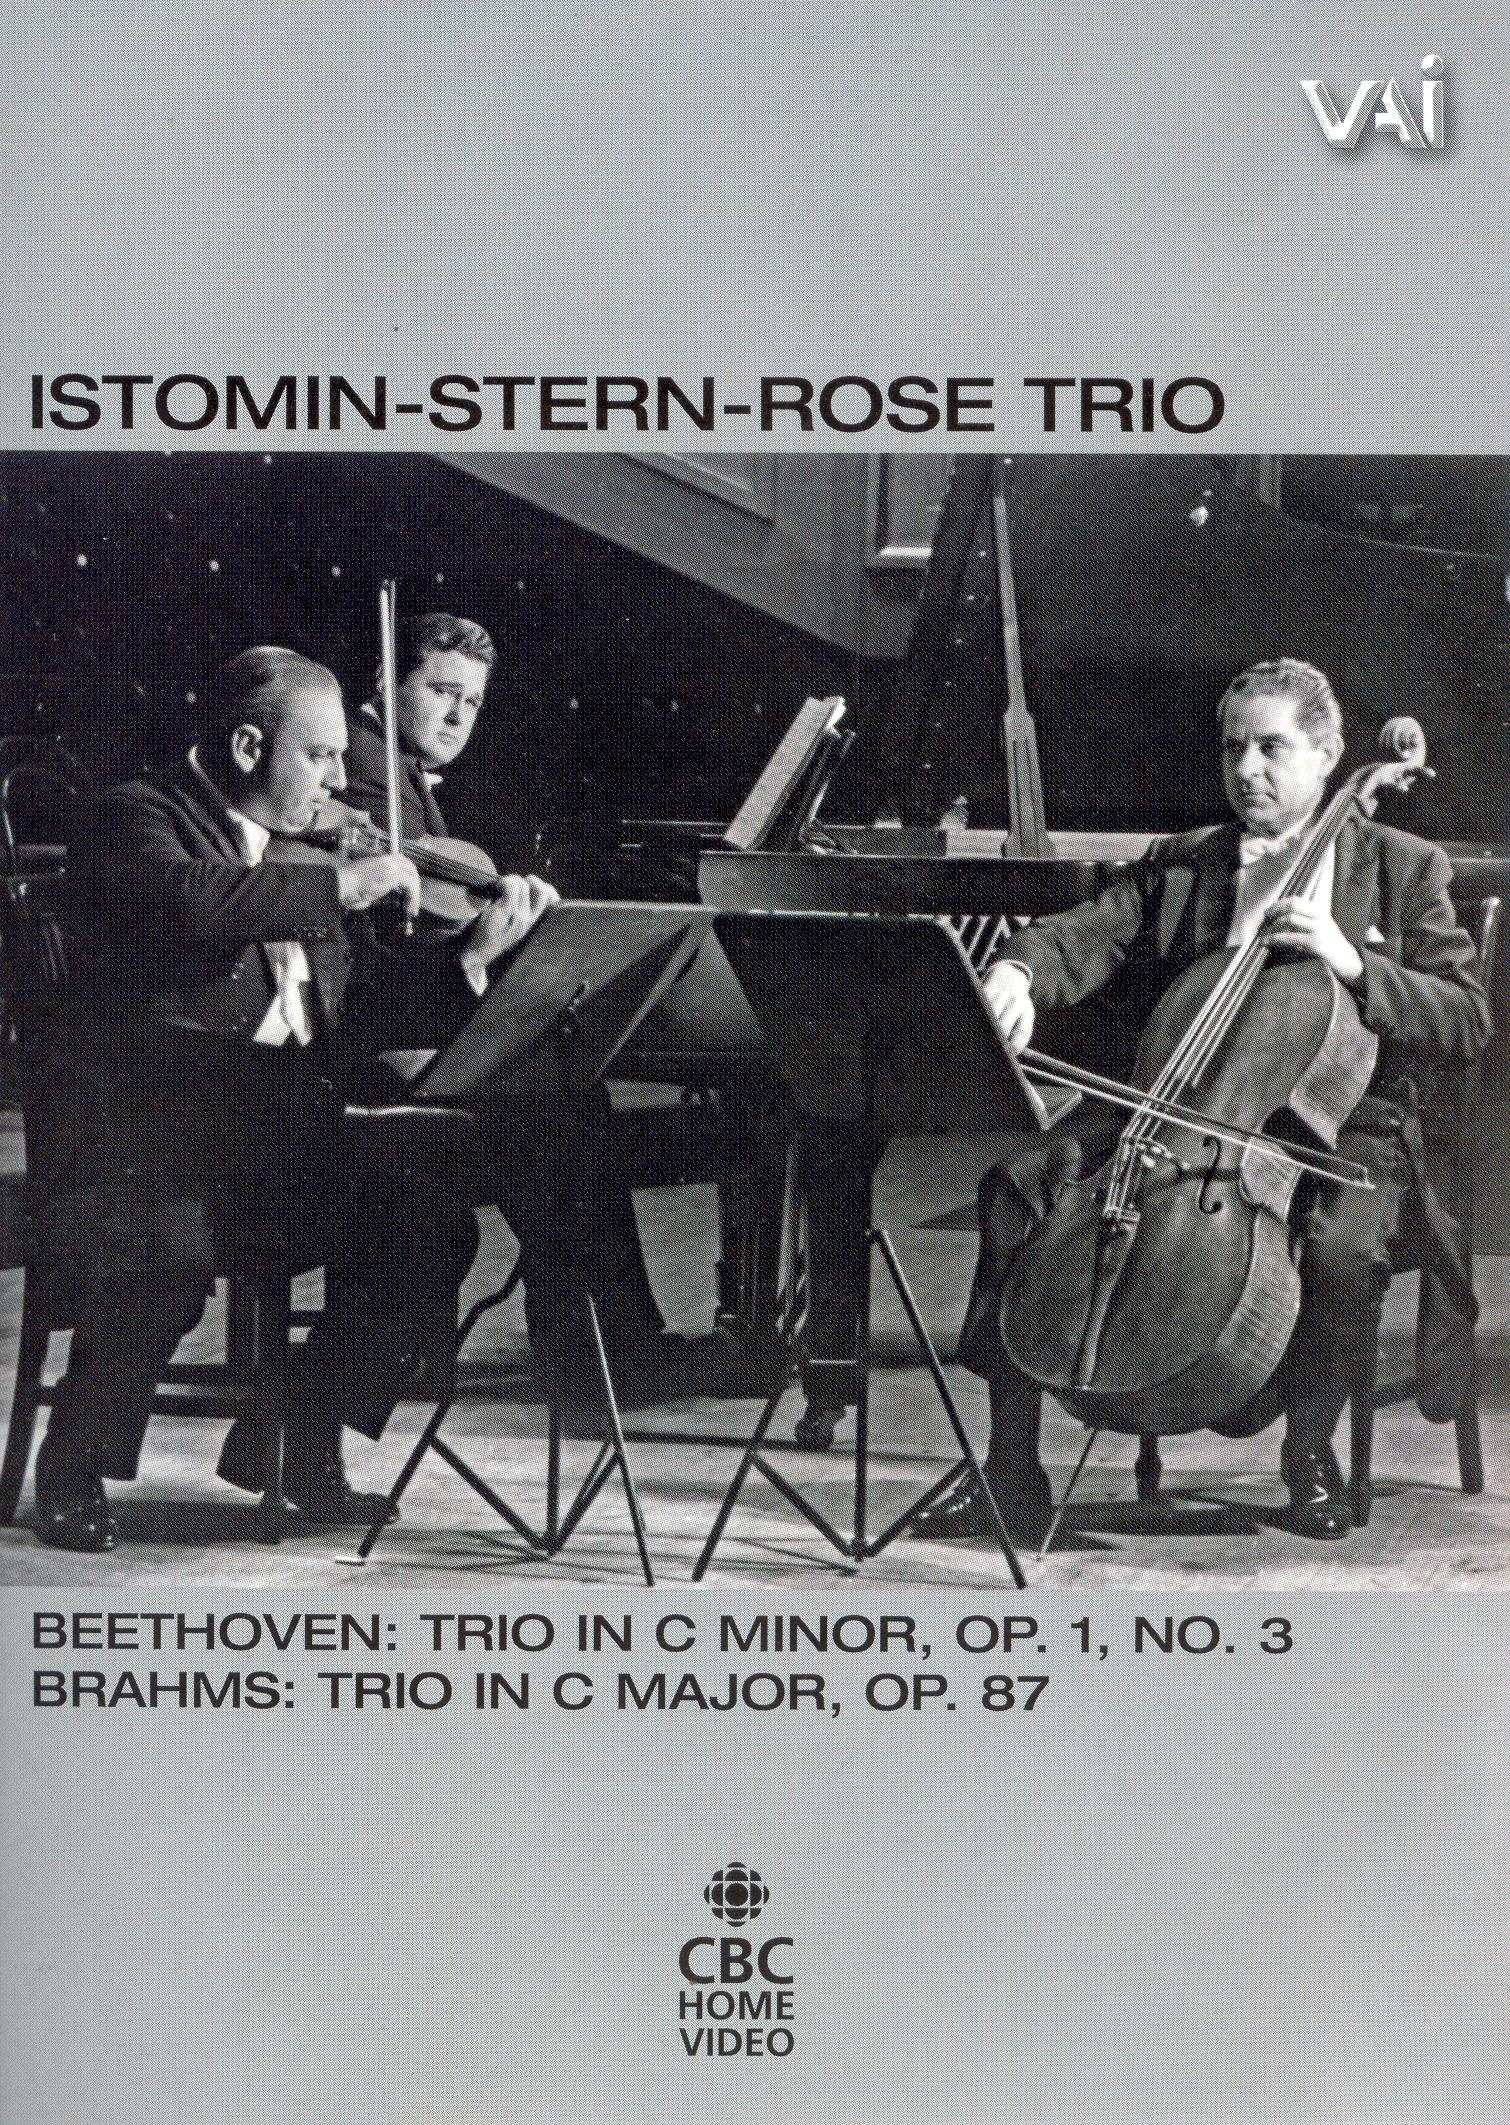 The Istomin-Stern-Rose Trio: Trio in C Minor / Trio in C Major